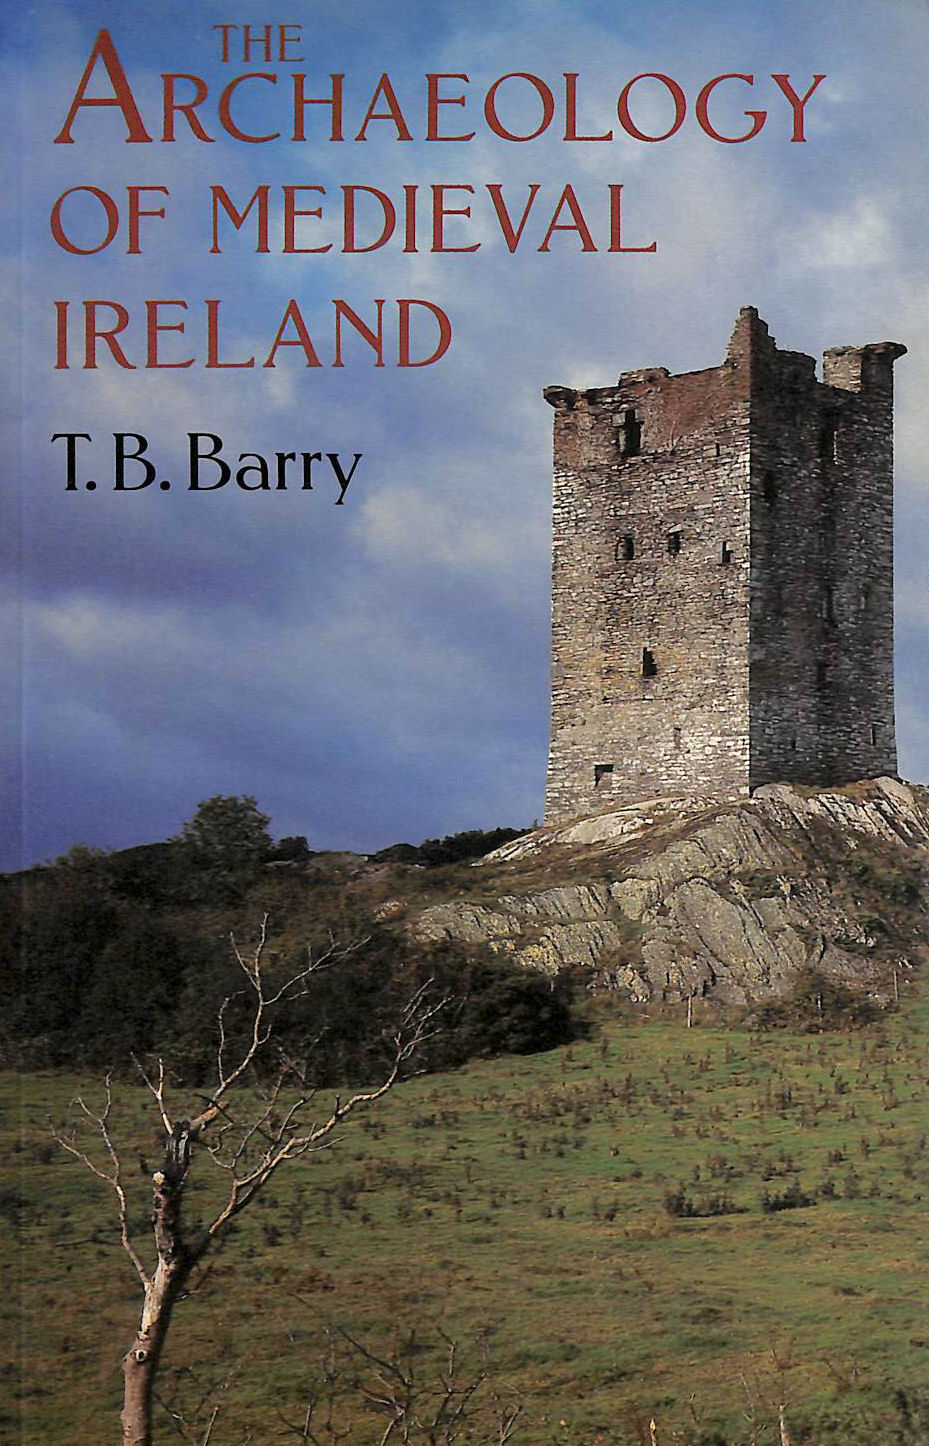 Image for The Archaeology of Medieval Ireland (University Paperbacks)